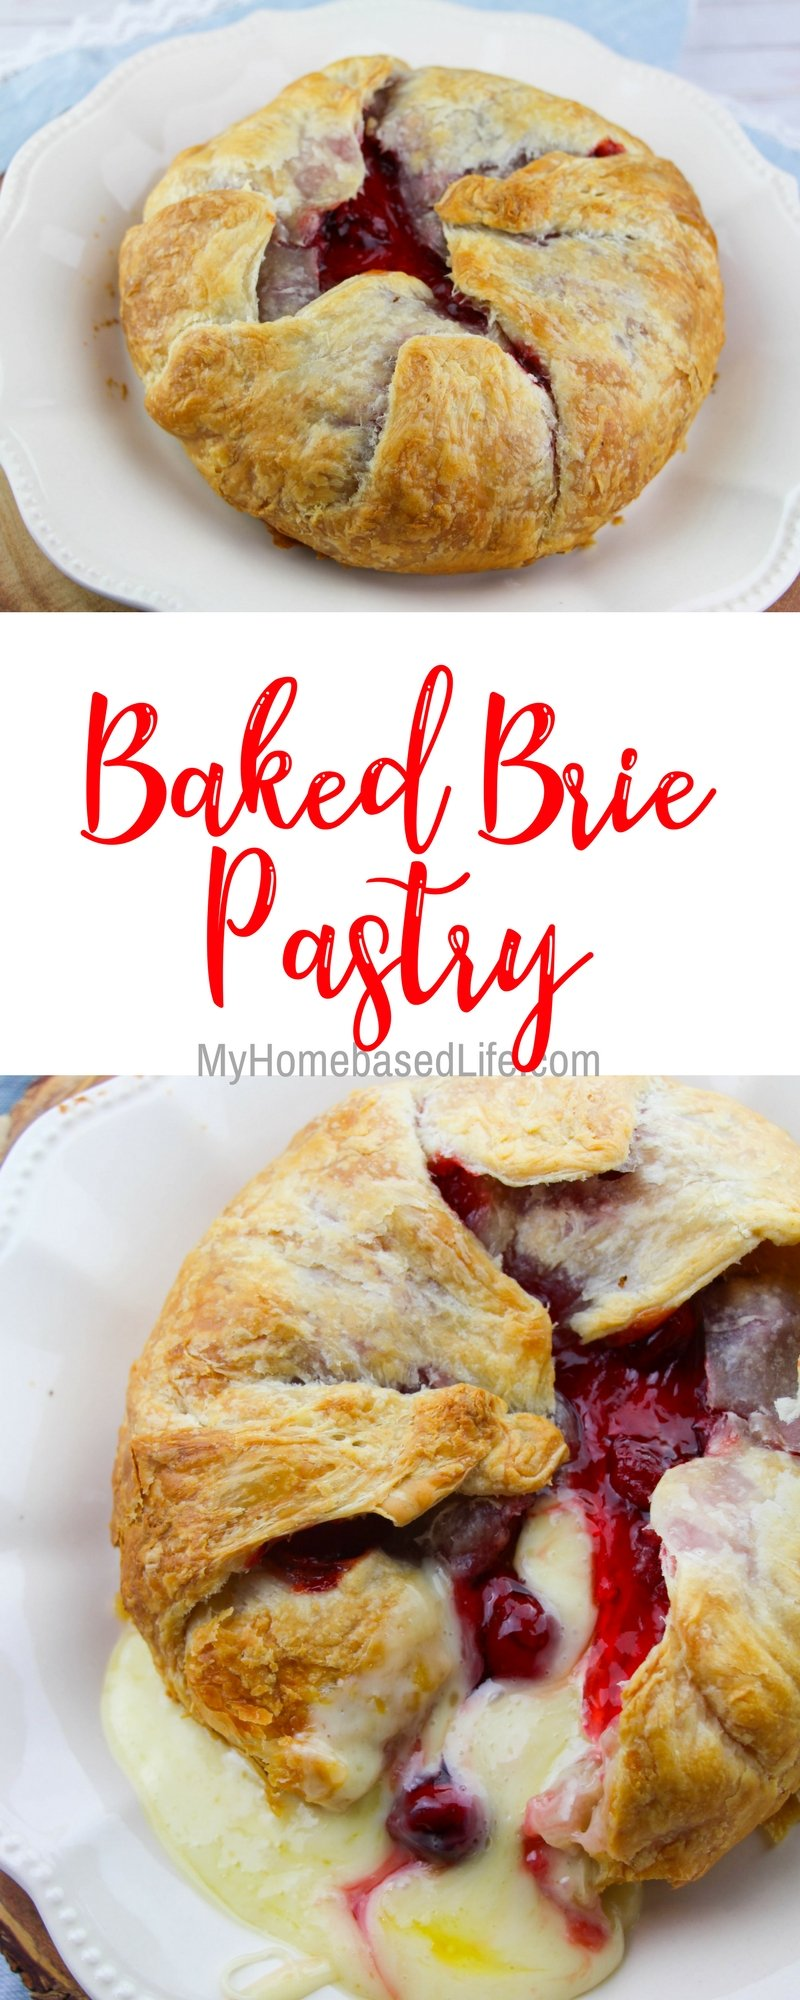 Baked Brie in Pastry Recipe